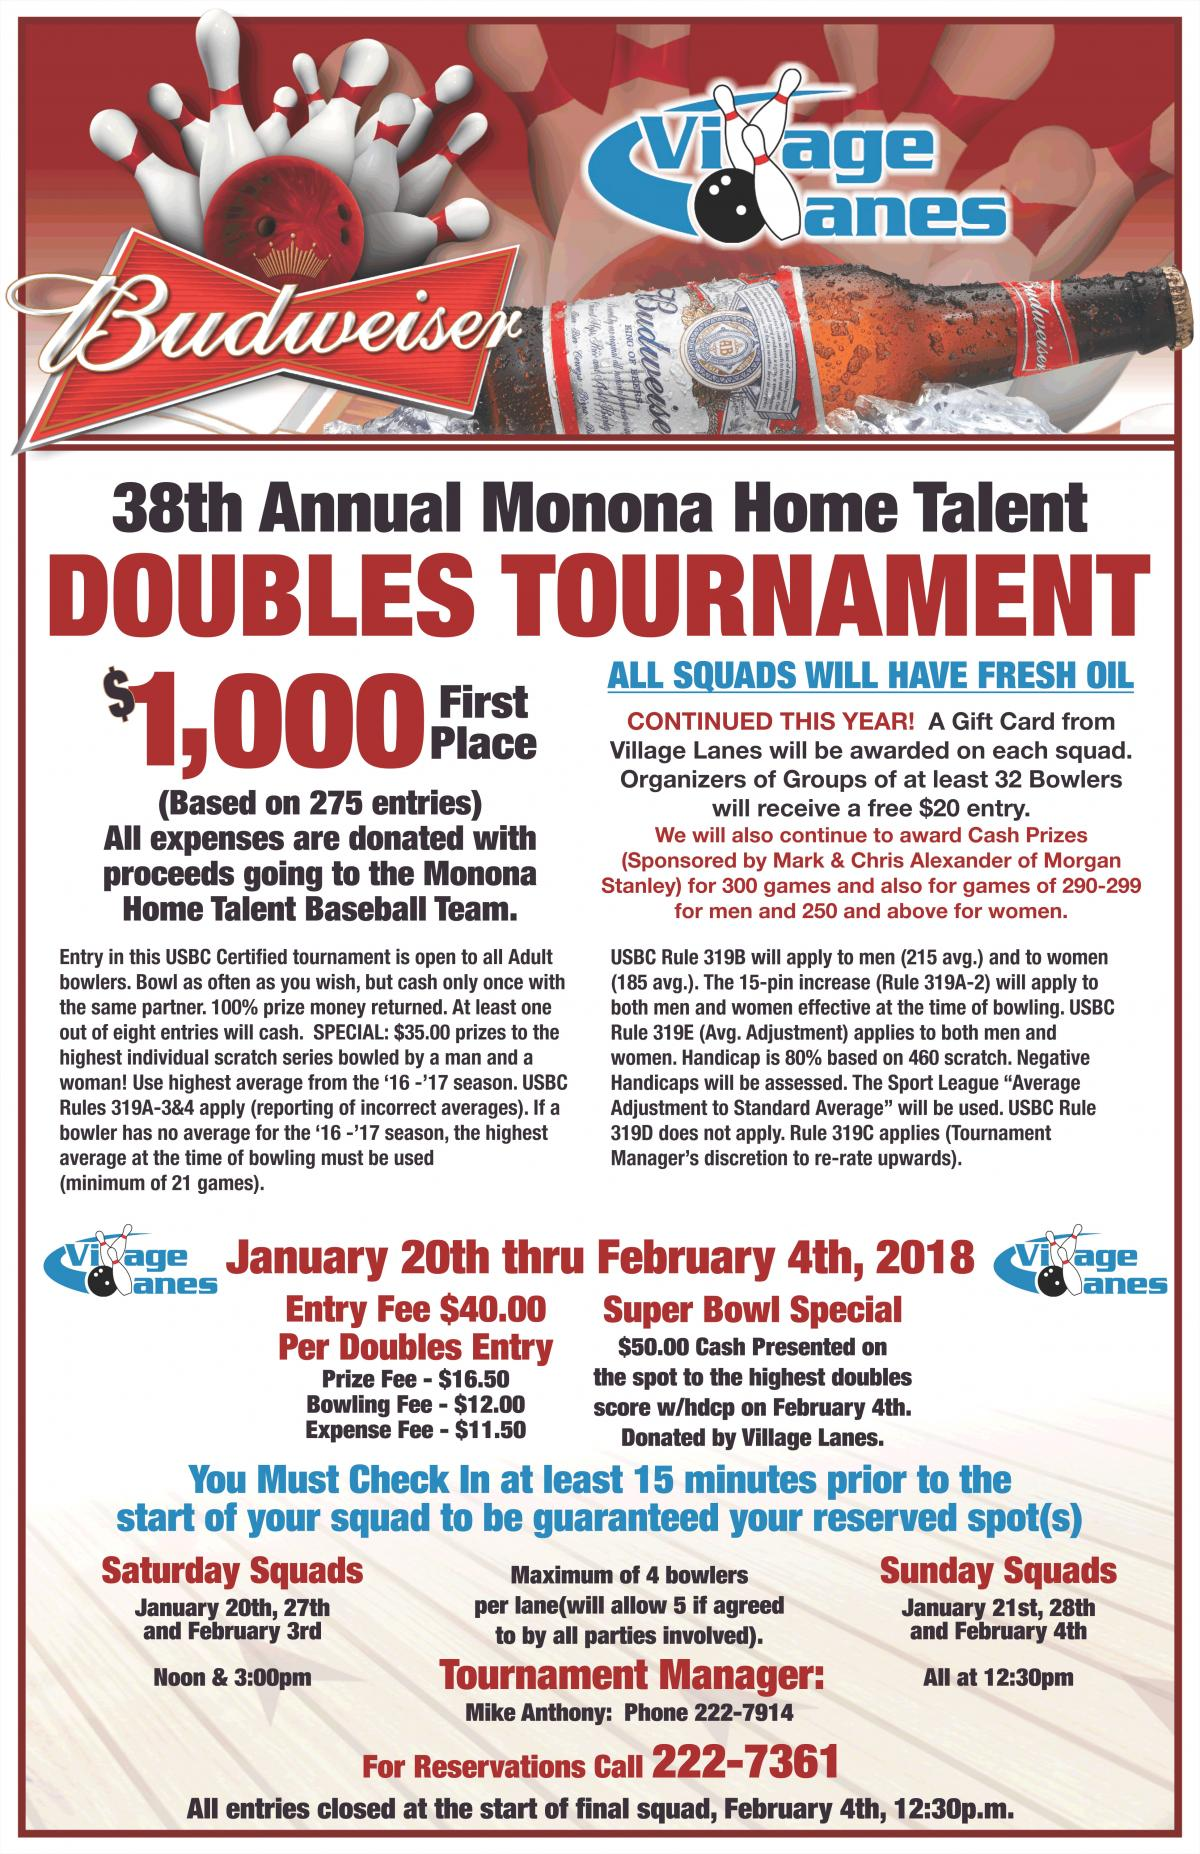 38th Annual Monona Home Talent Bowling Tournament